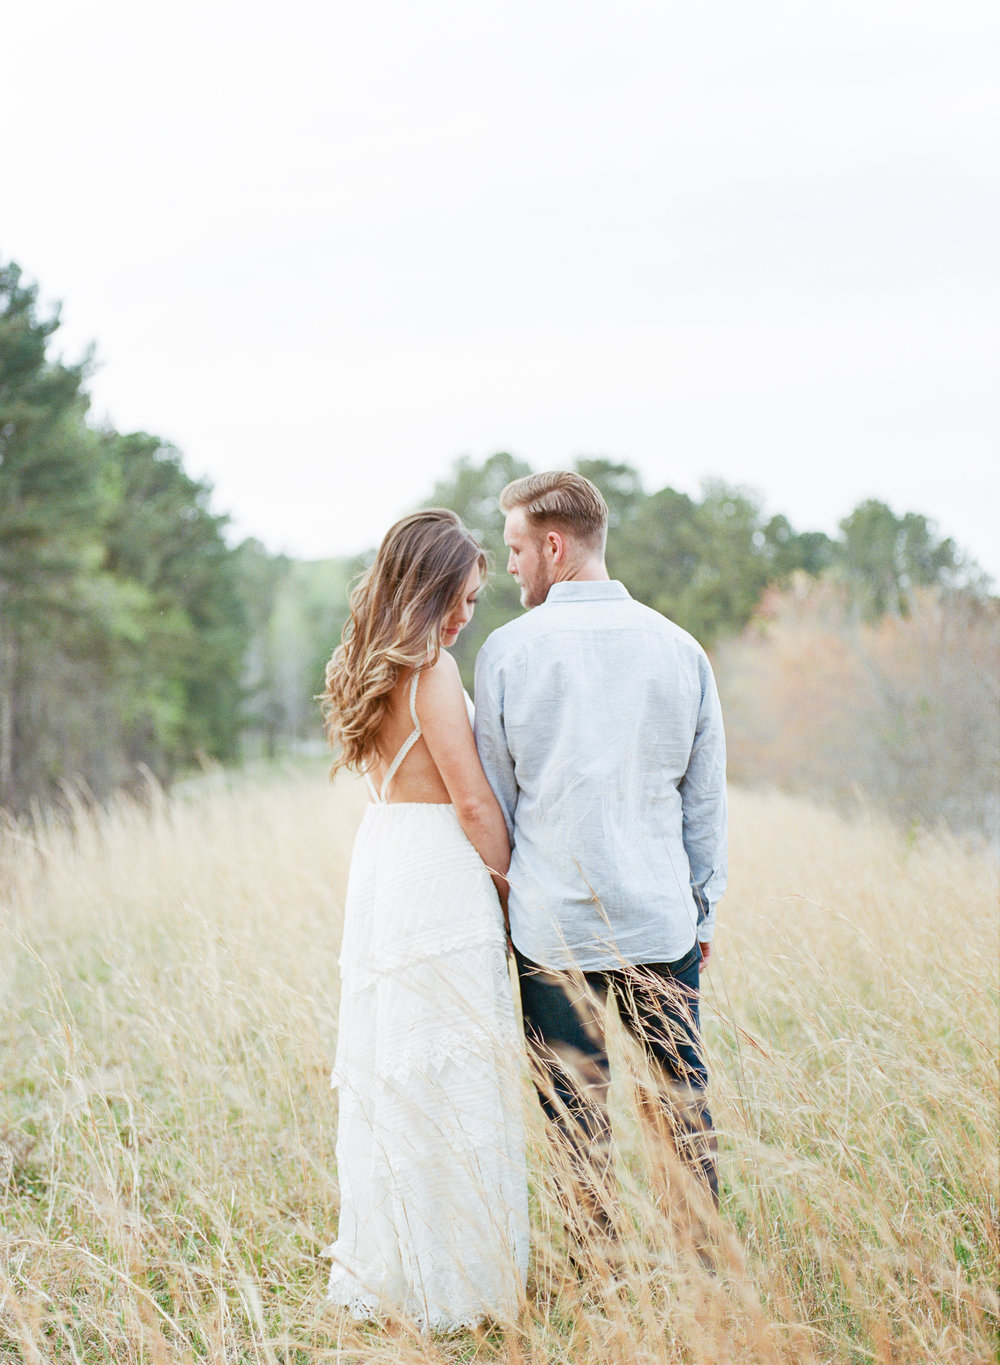 KELLY & WILL - ALPHARETTA, GEORGIA